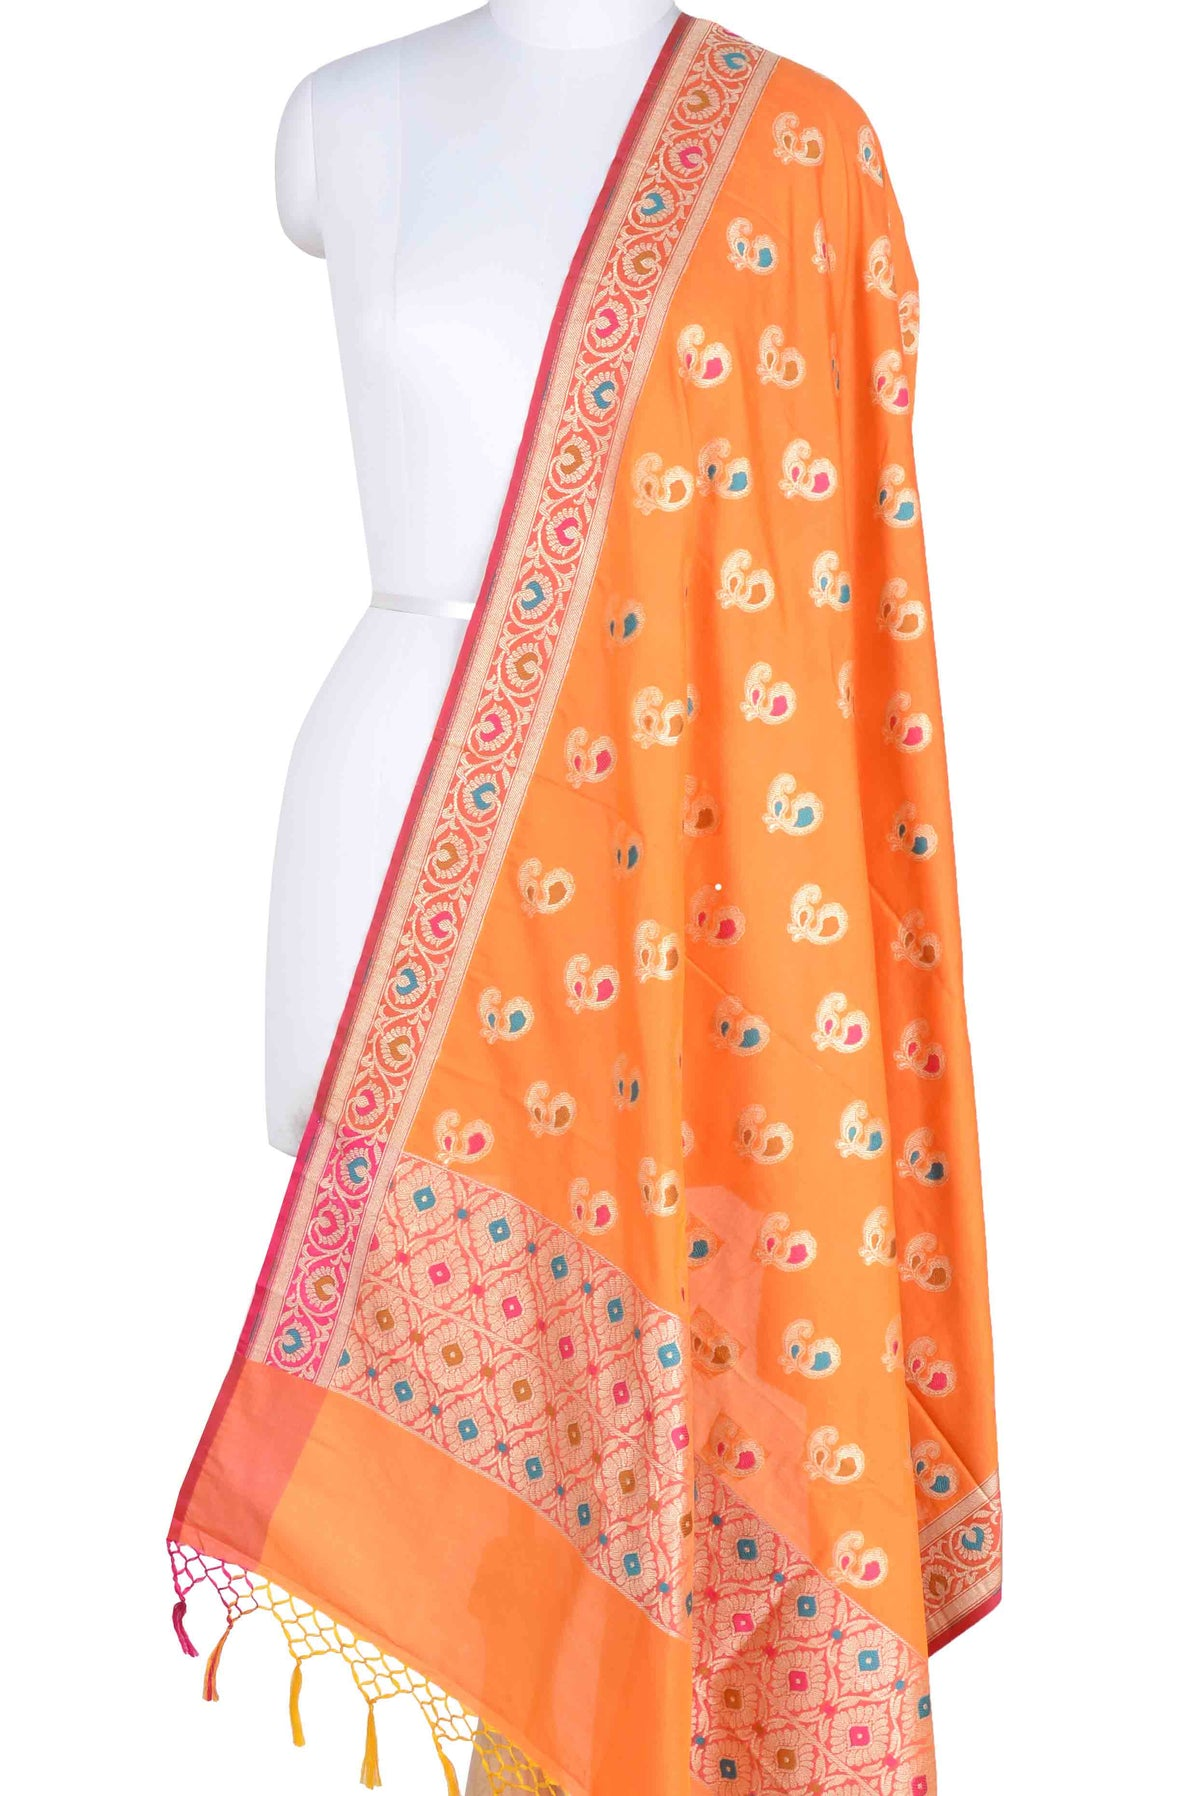 Orange Banarasi Dupatta with multi color peacock motifs (1) Main